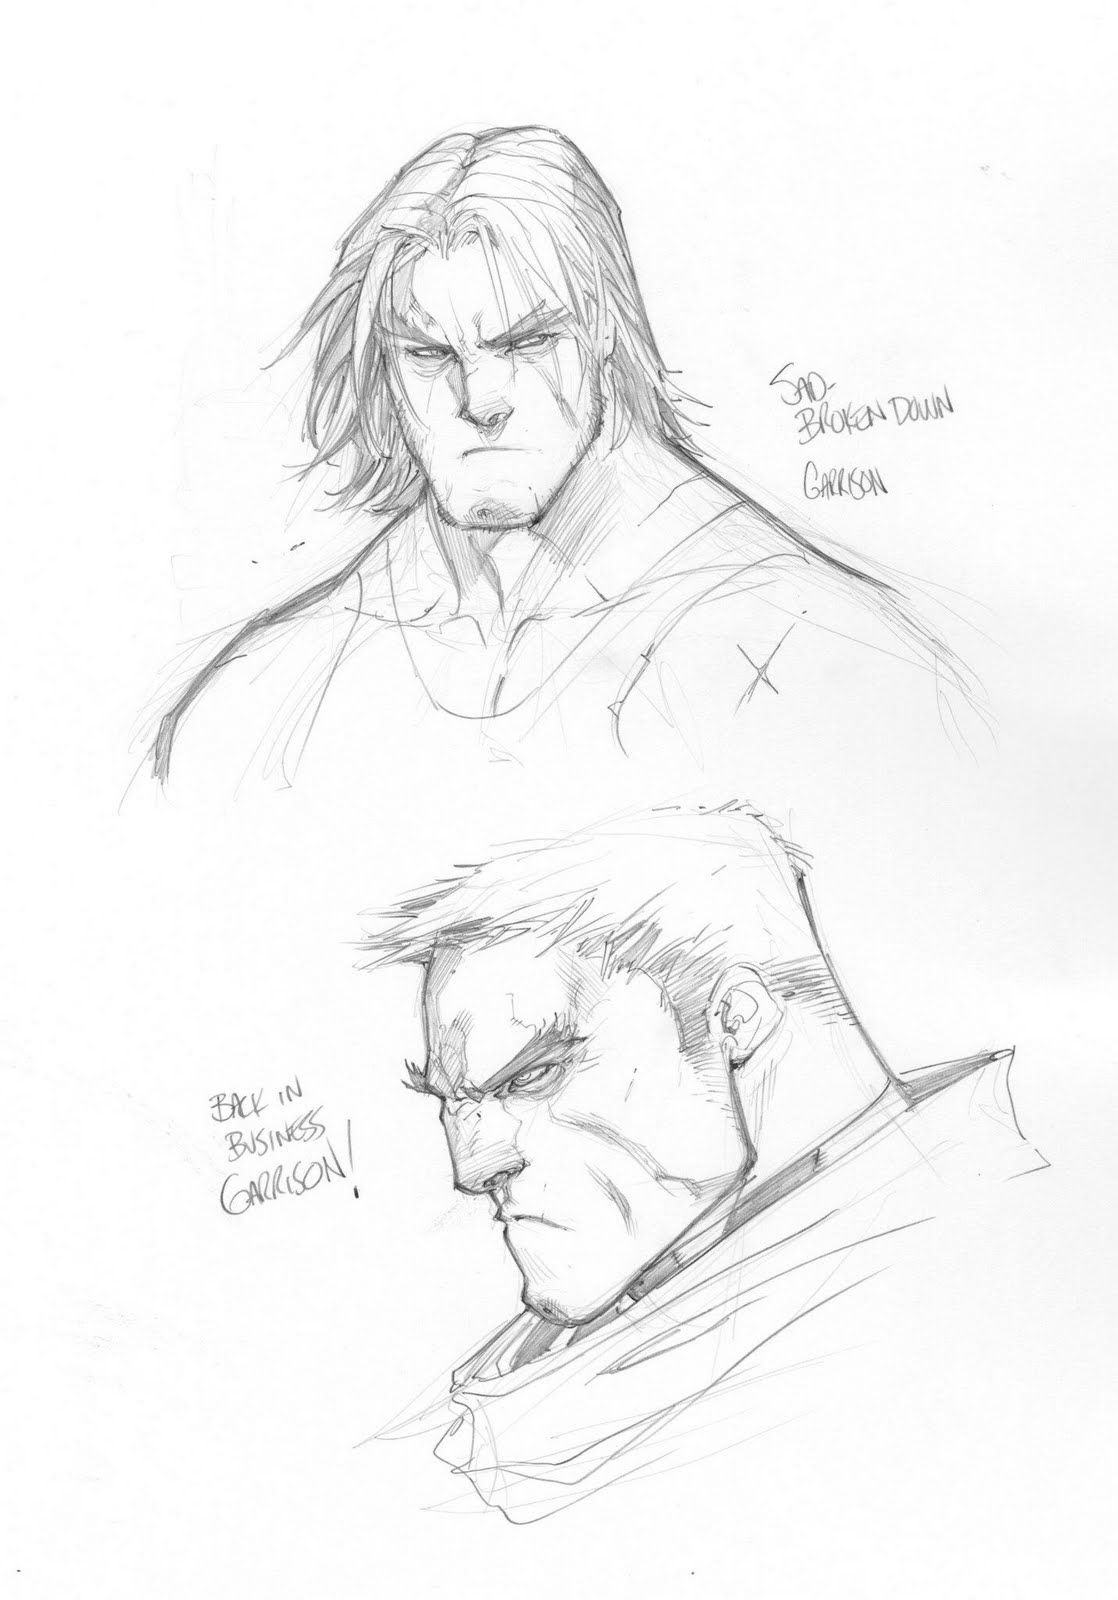 1118x1600 Joe Madureira Posted Some Of His Favorite Battle Chasers Sketches